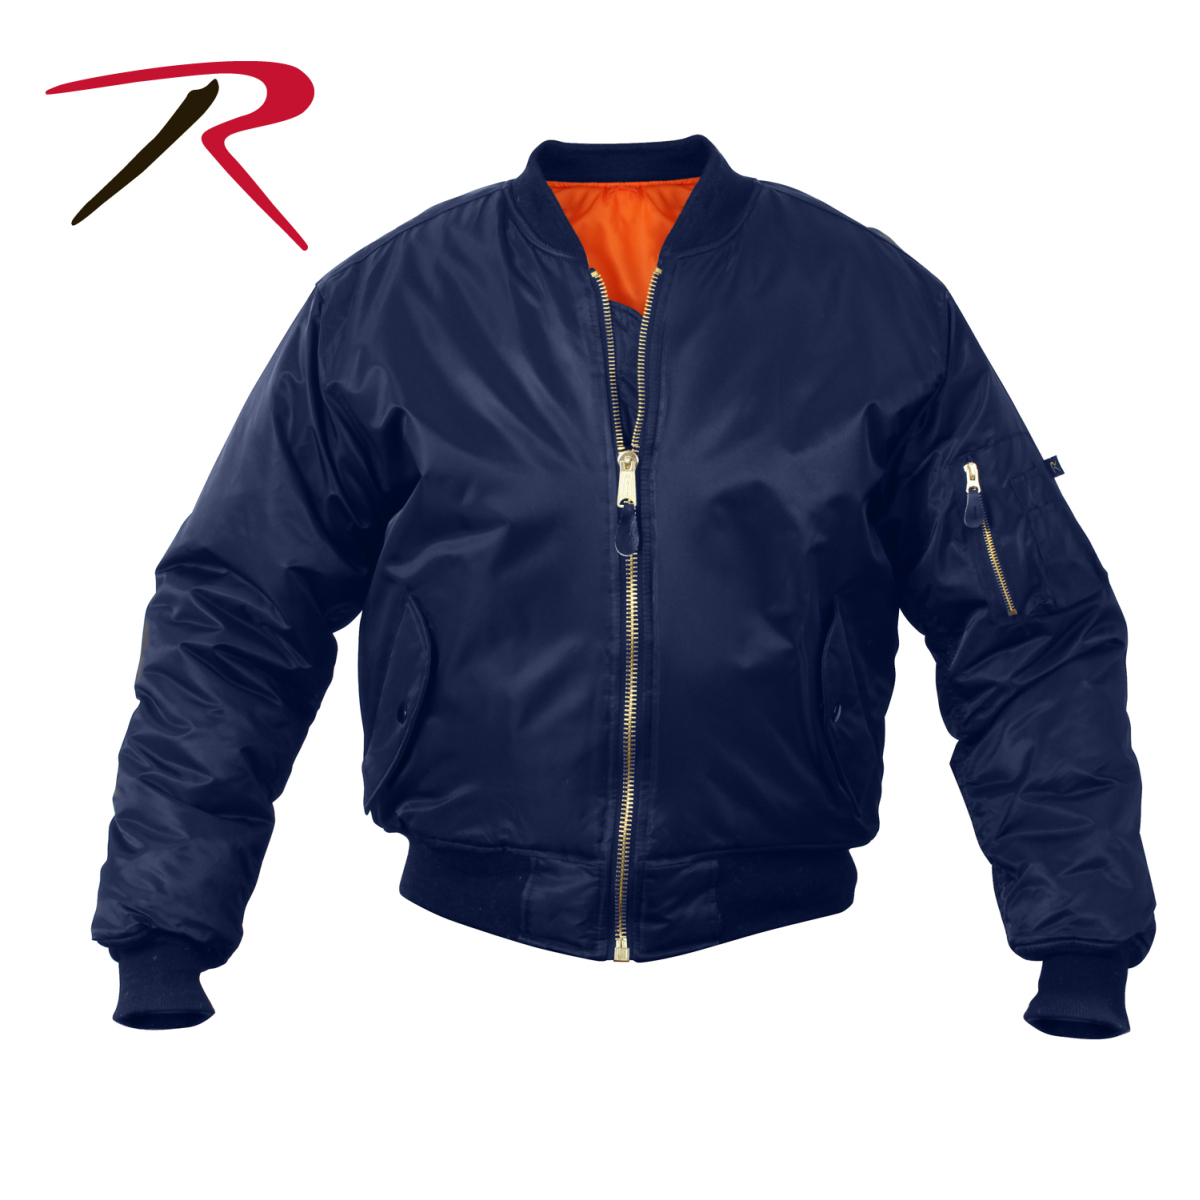 Rothco ® Navy Blue Ma-1 Flight Jacket